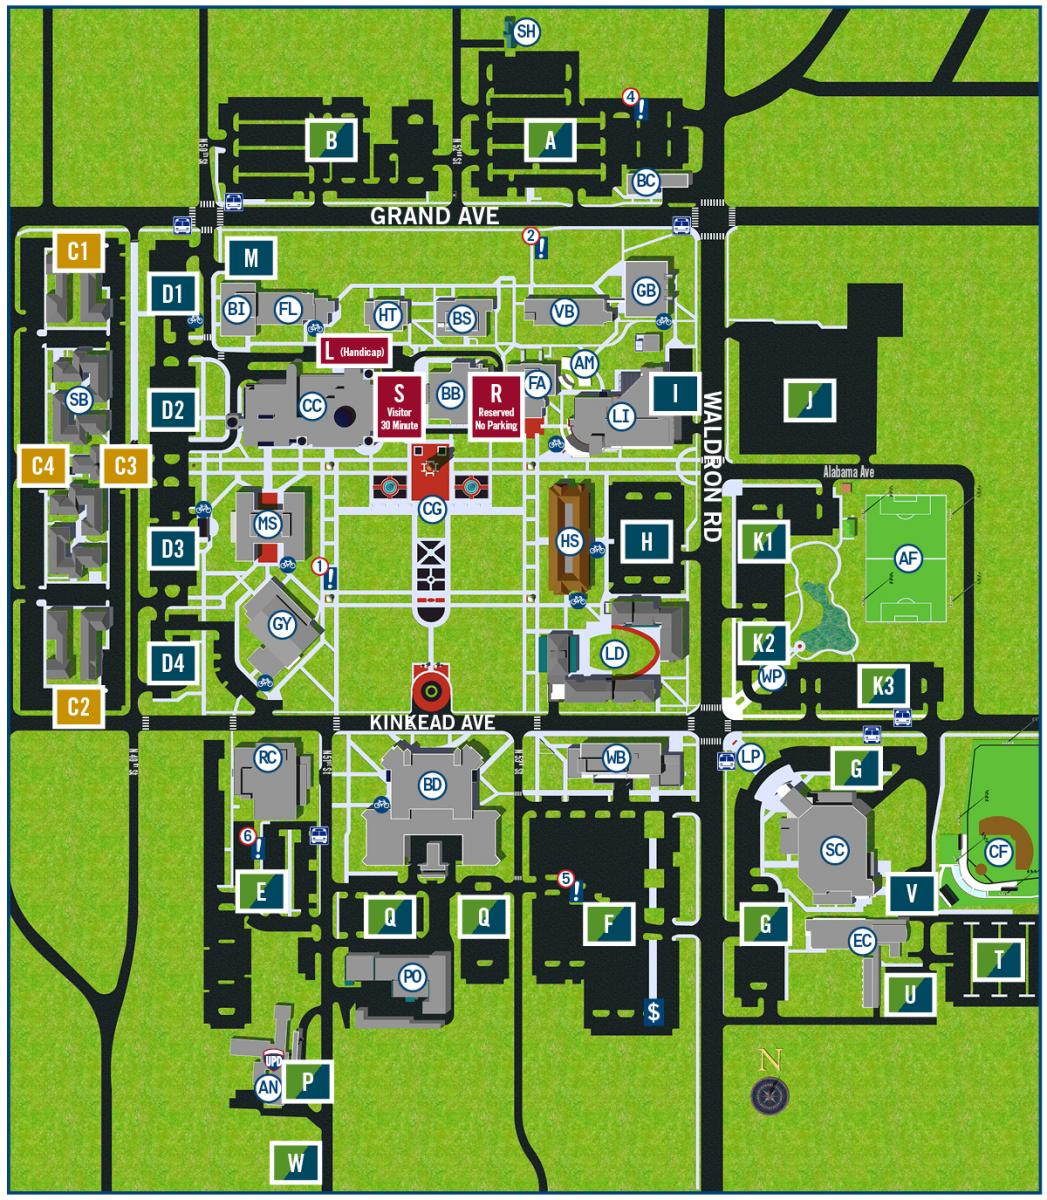 university of arkansas fort smith campus map Parking Lot Designations University Of Arkansas Fort Smith Uafs university of arkansas fort smith campus map